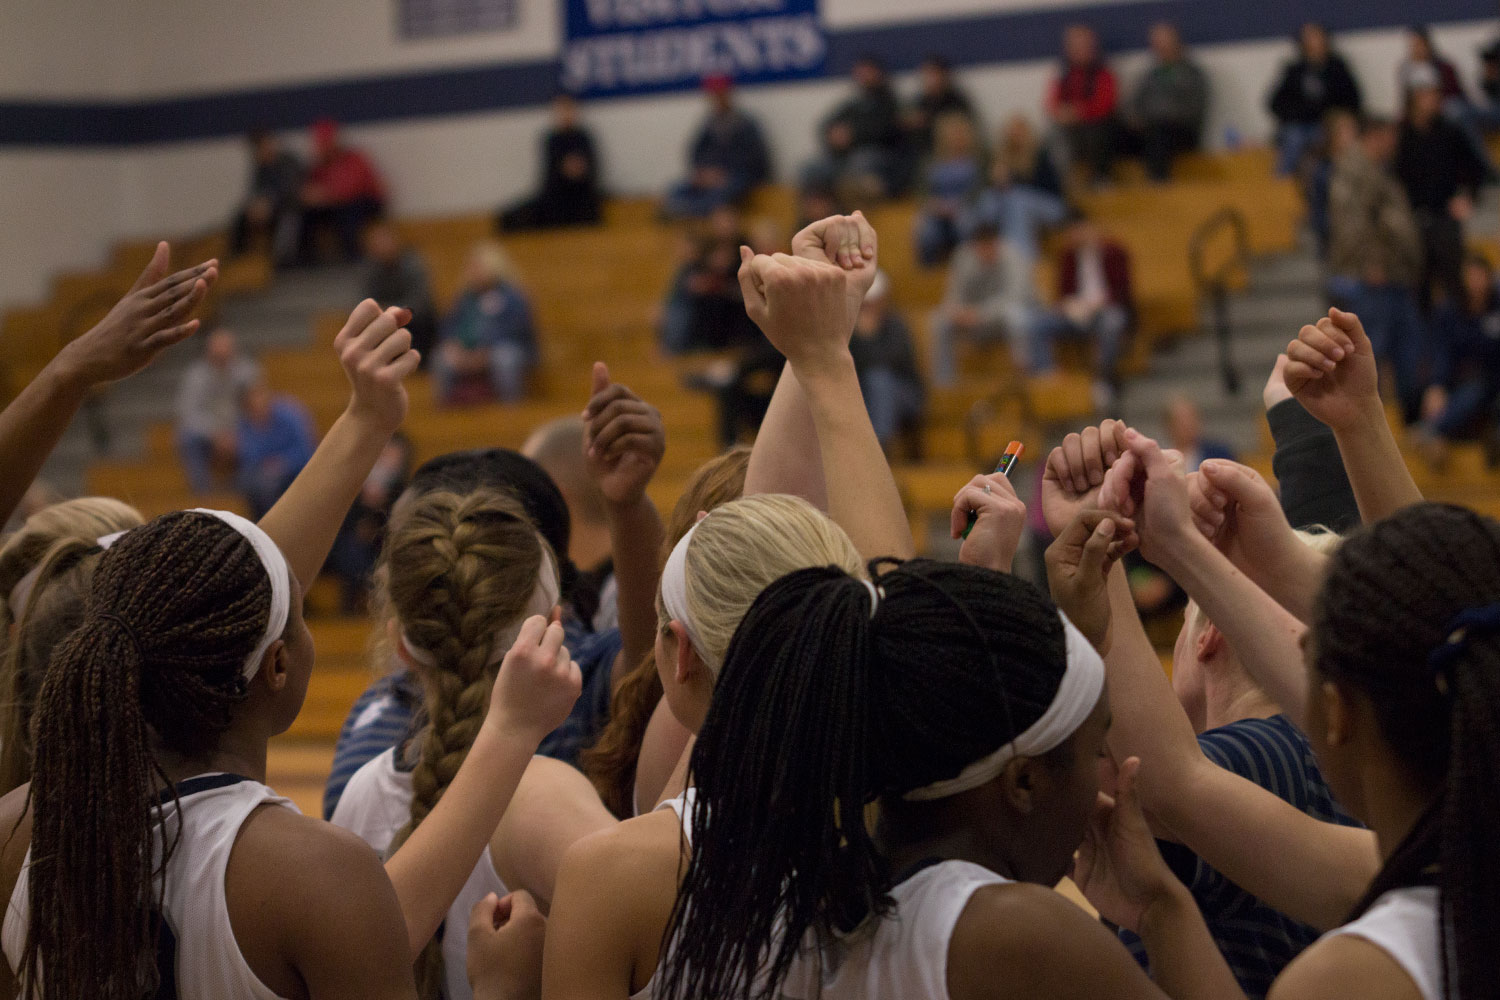 The Spartan girls huddle before their game; in which they won 48-14.